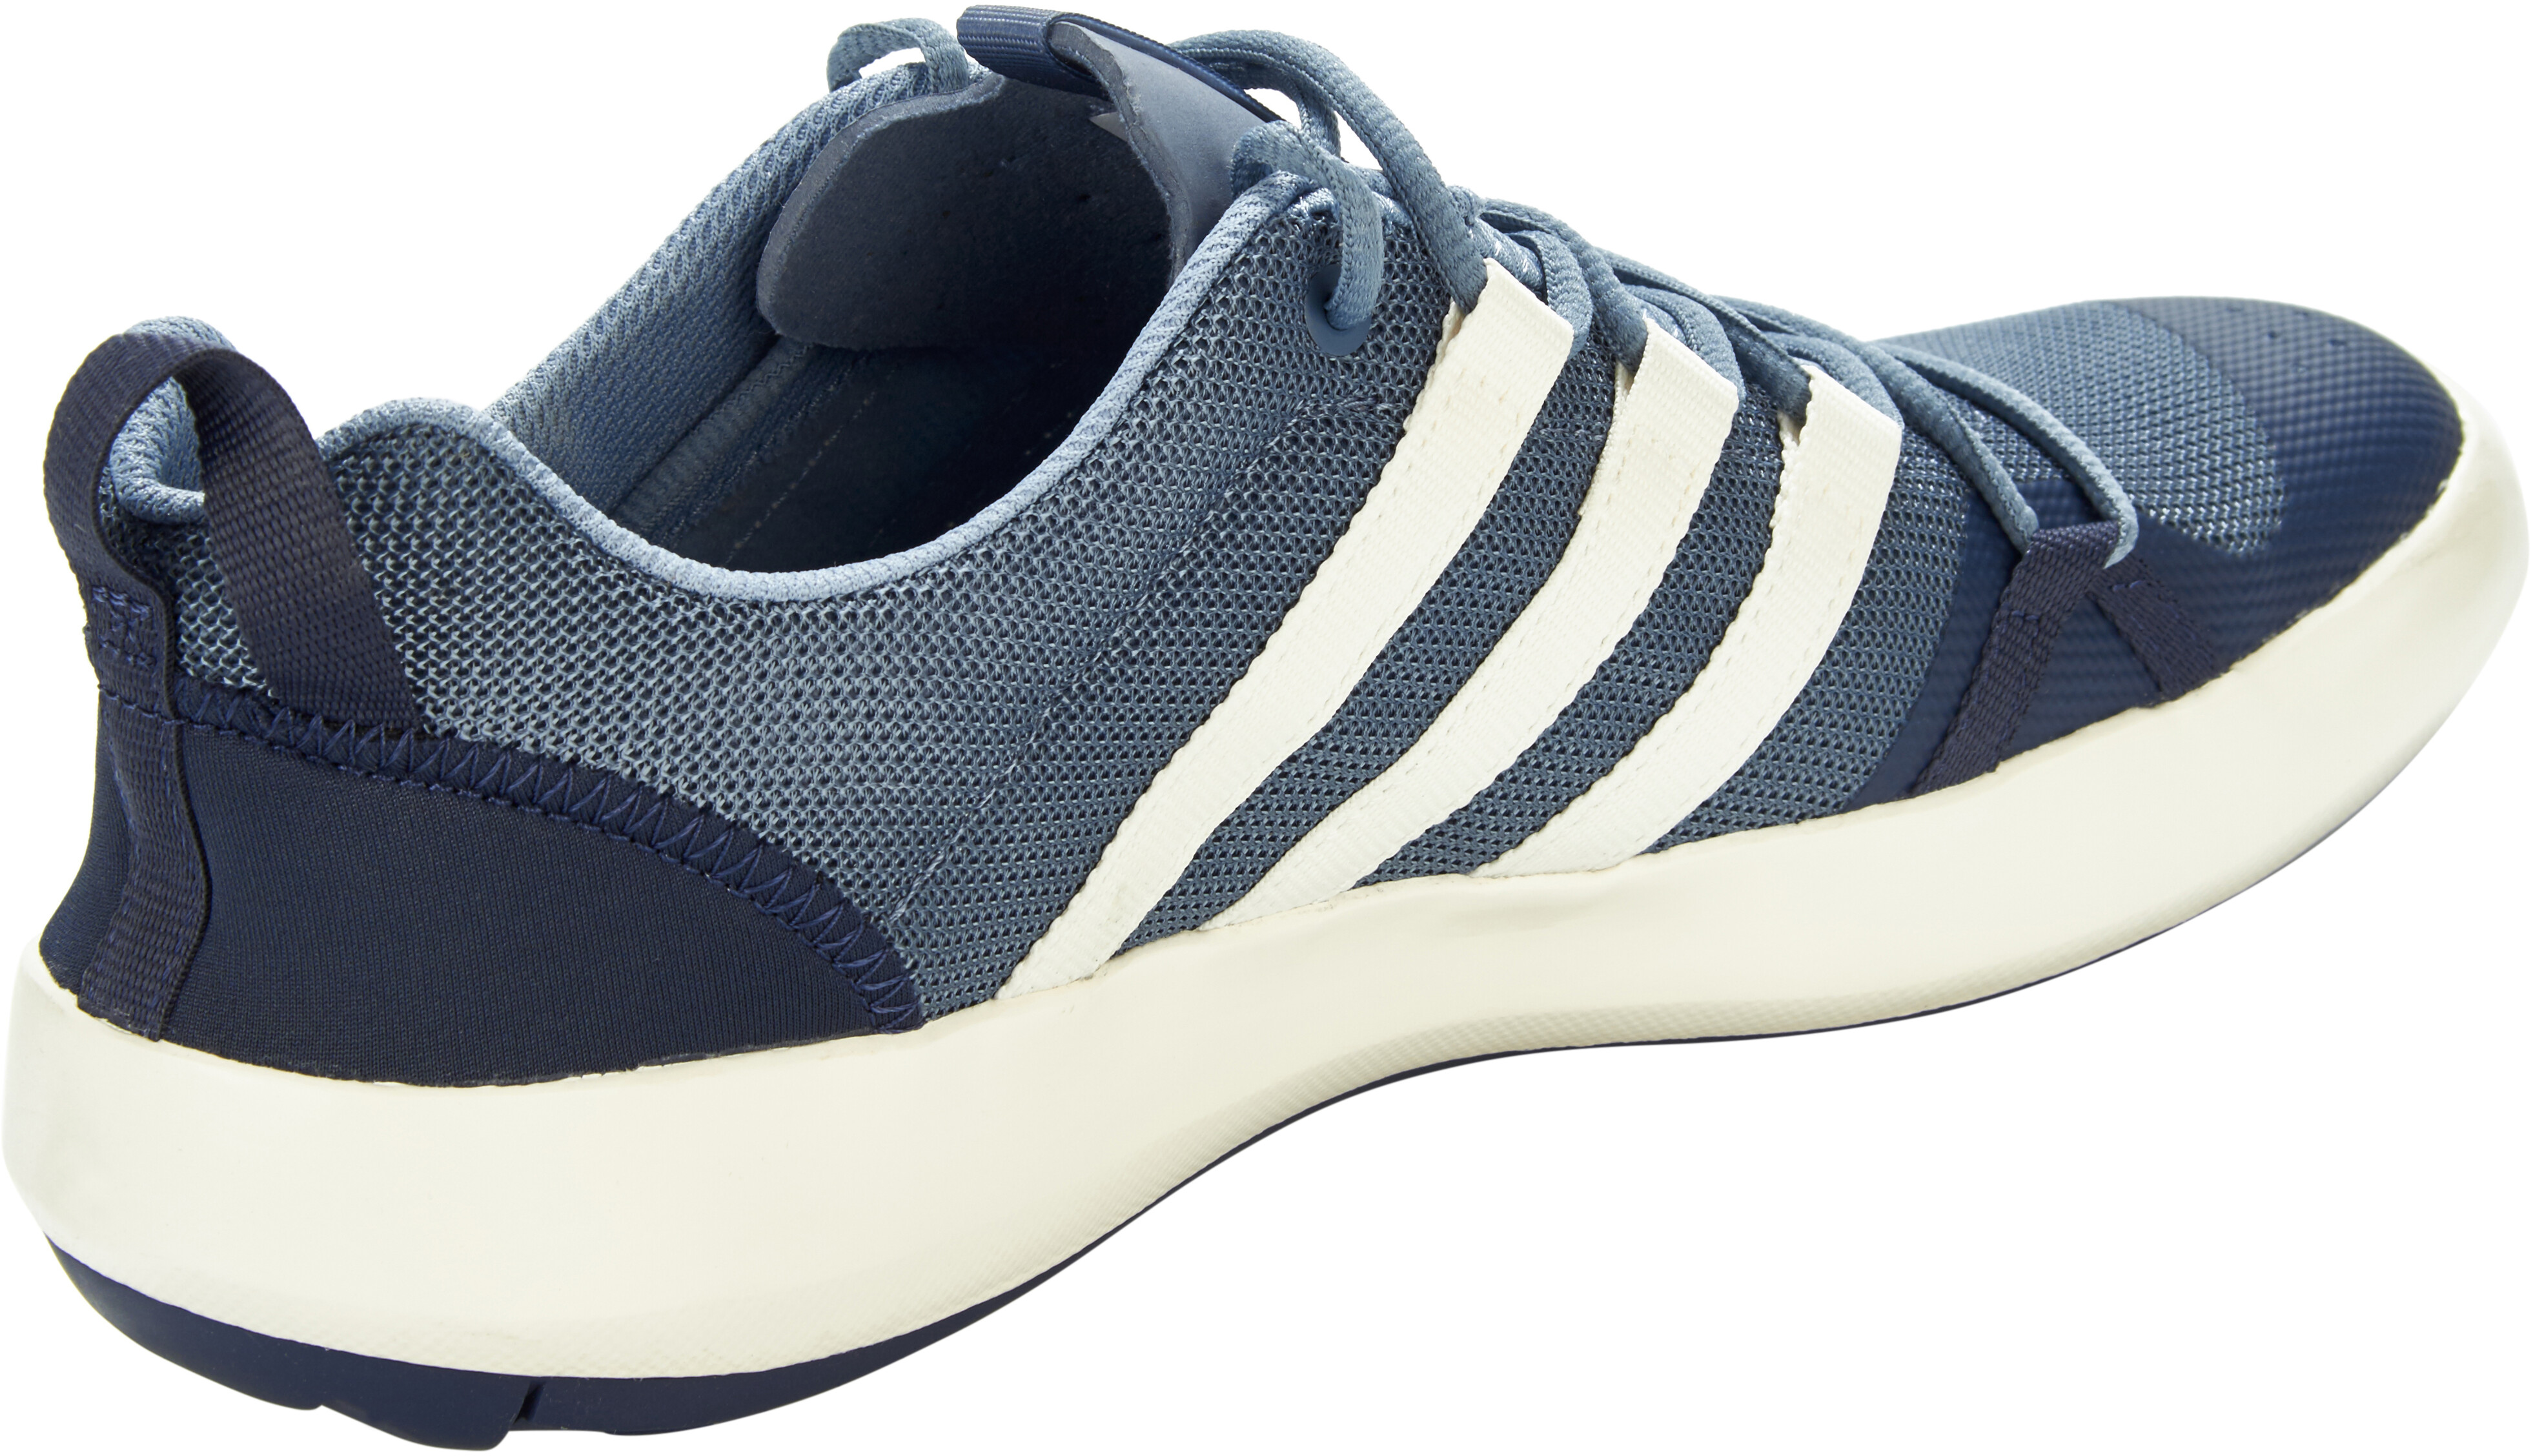 Adidas Boat Shoes Review